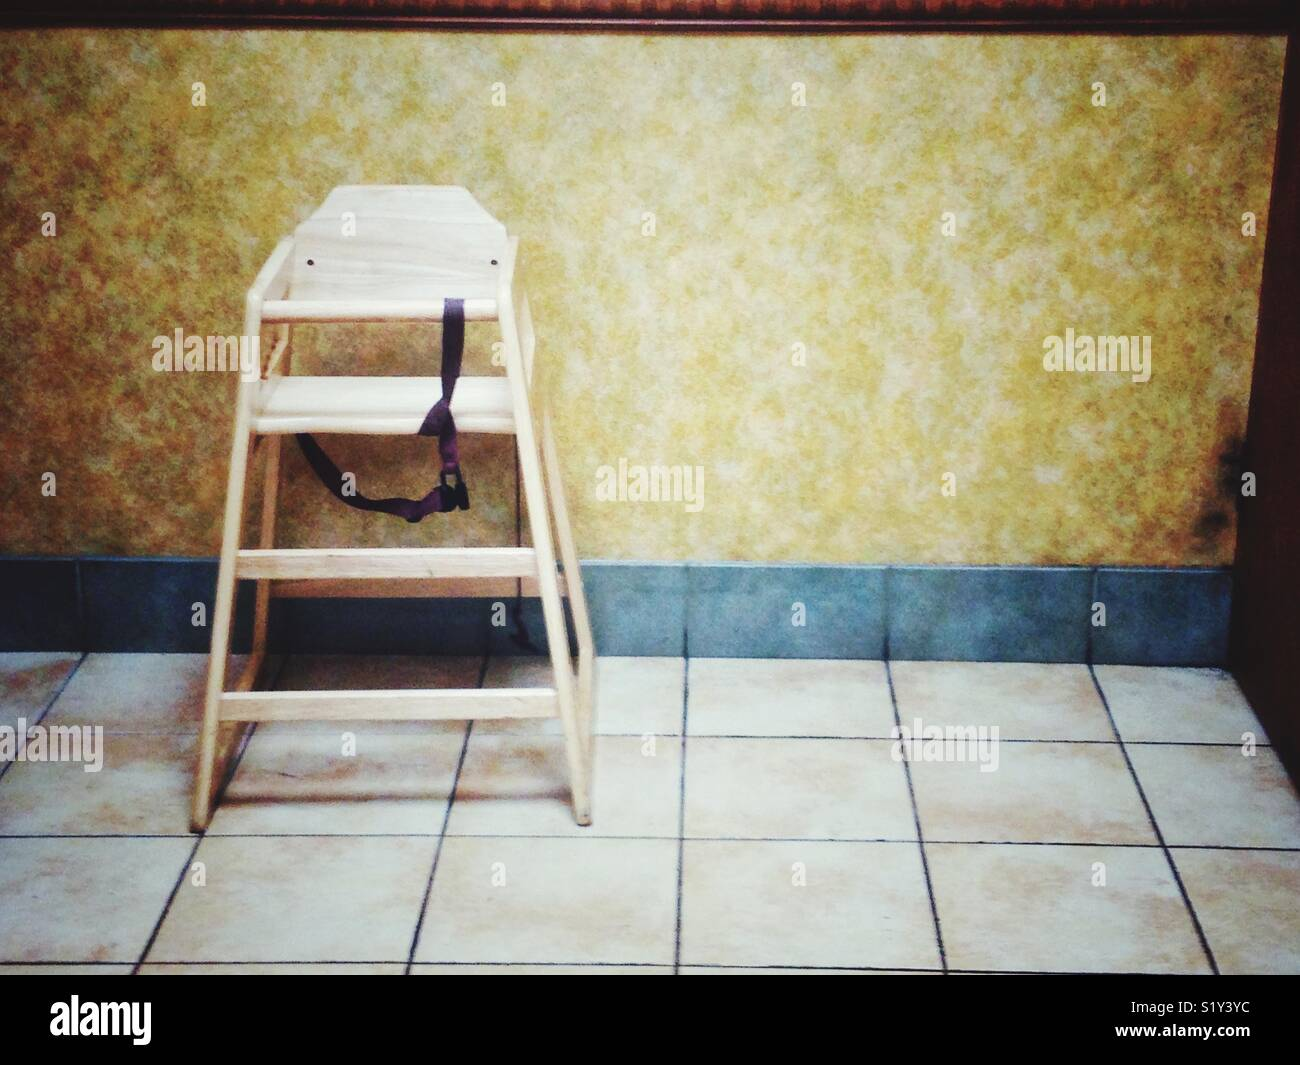 childs high chair stock photos childs high chair stock images alamy